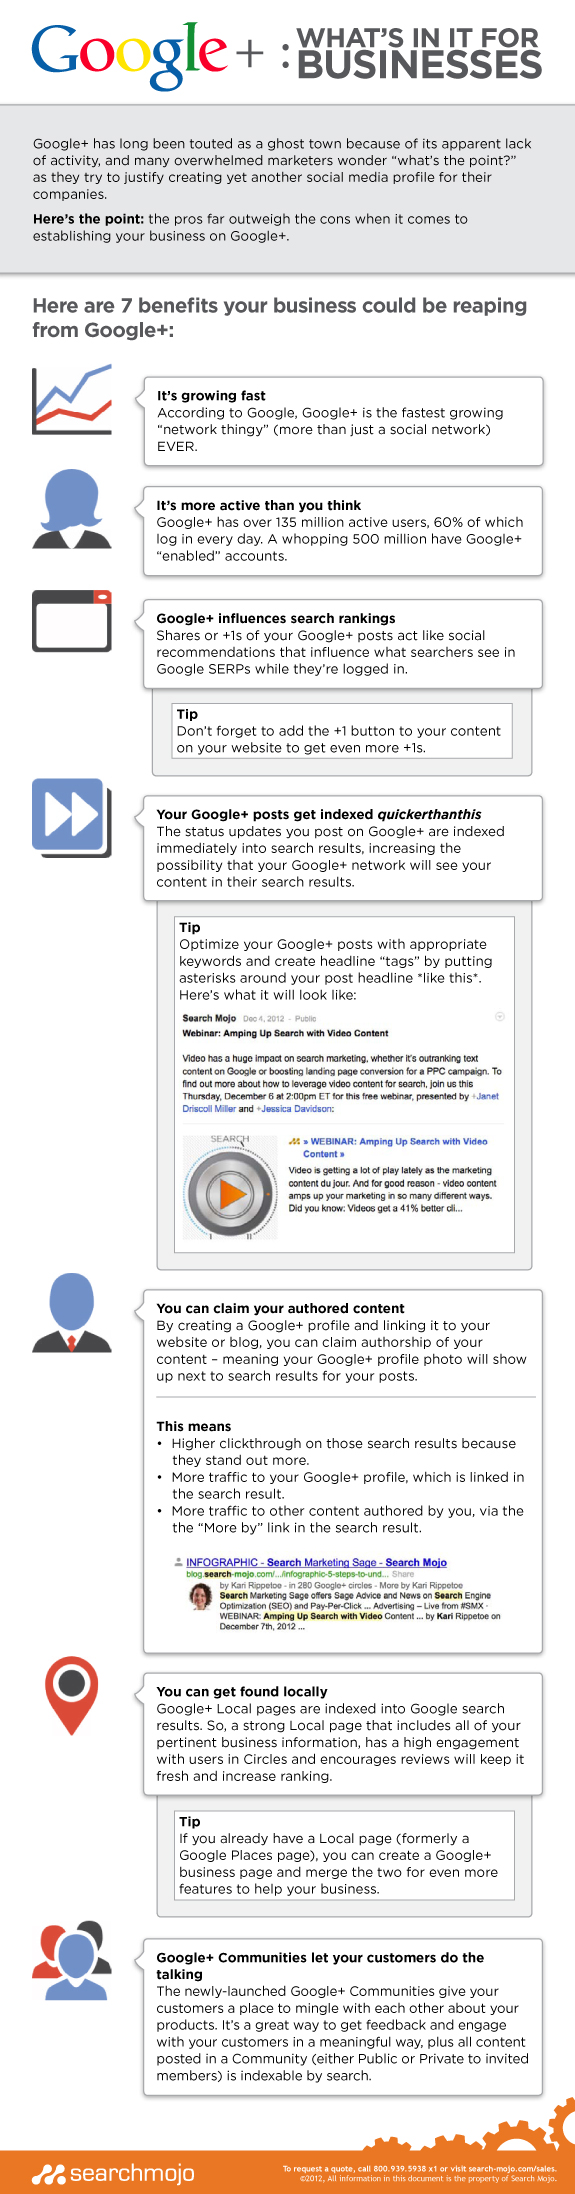 Google+ Benefits for Business